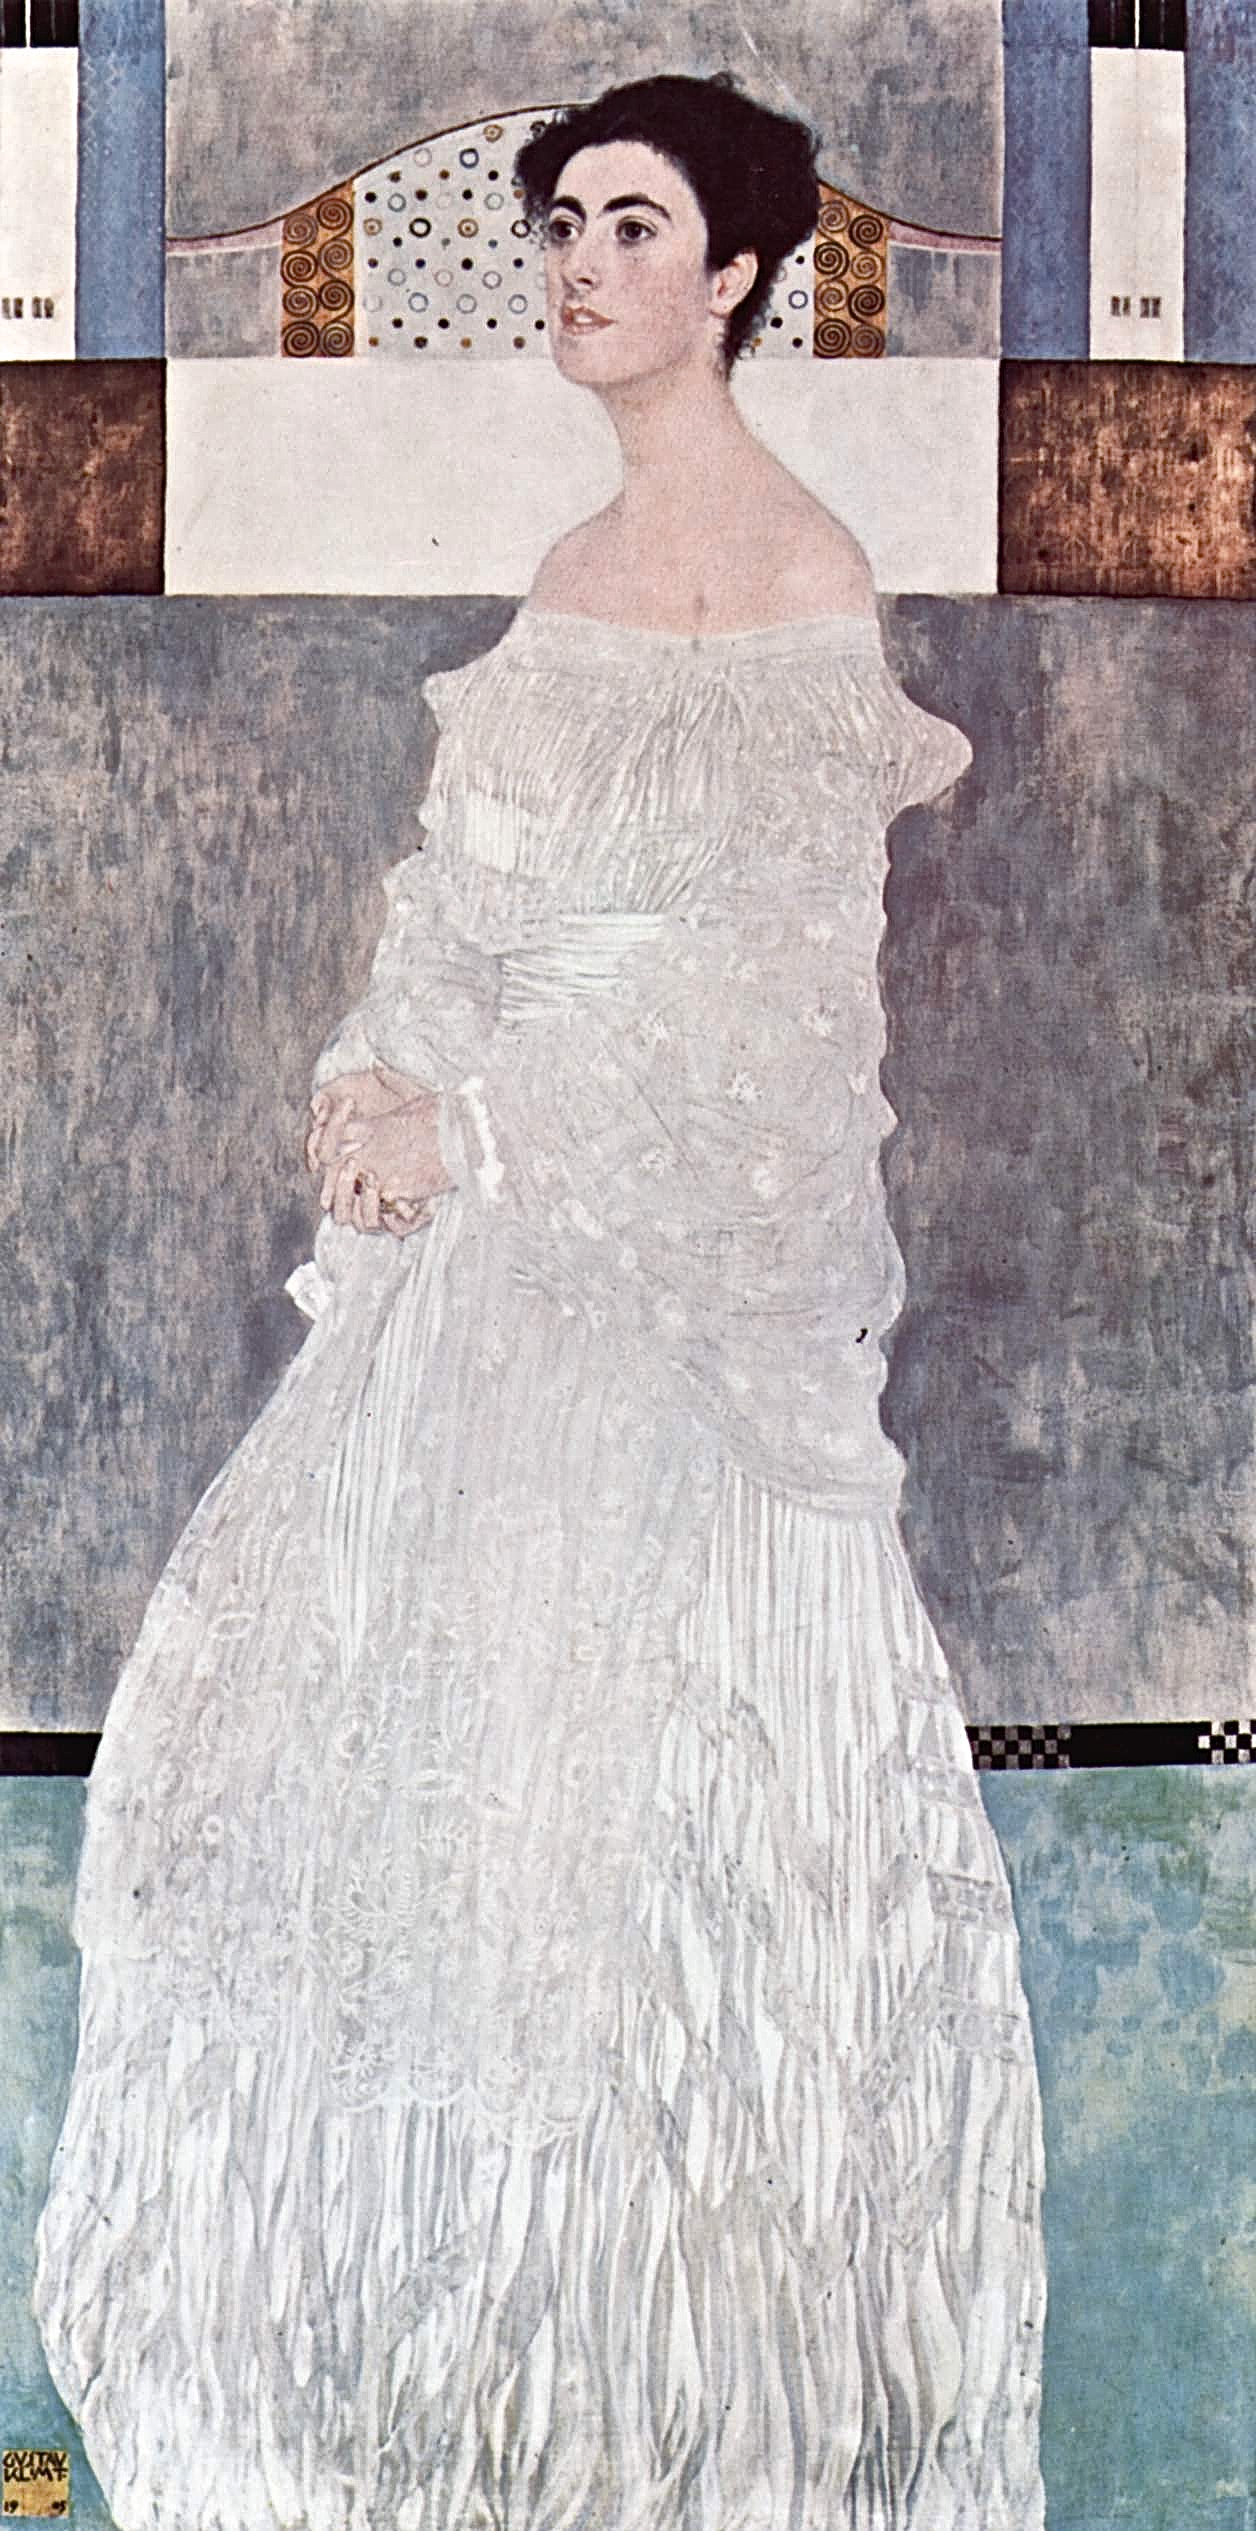 Gustav Klimt Ritratto Margarethe Stonborough Wittgenstein